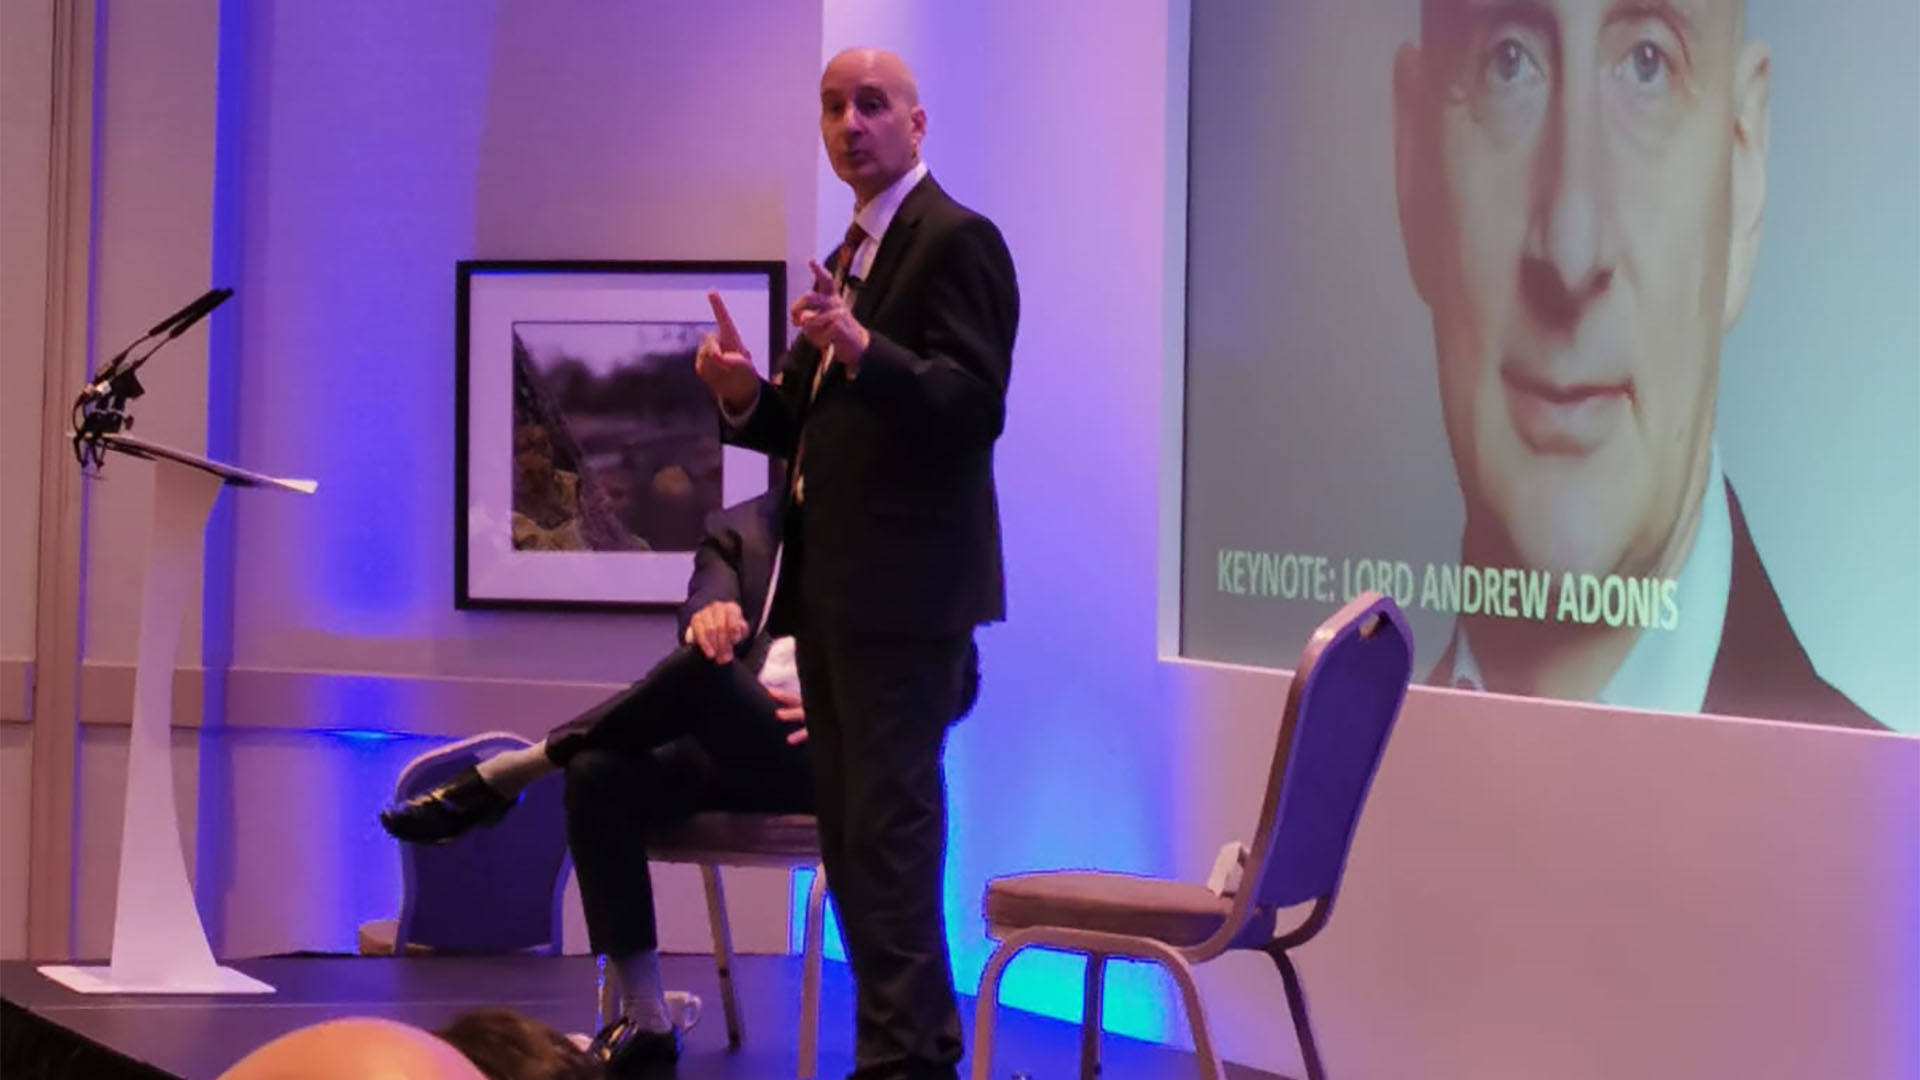 Adonis and Neville address the inaugural Talking 'Bout Regeneration conference